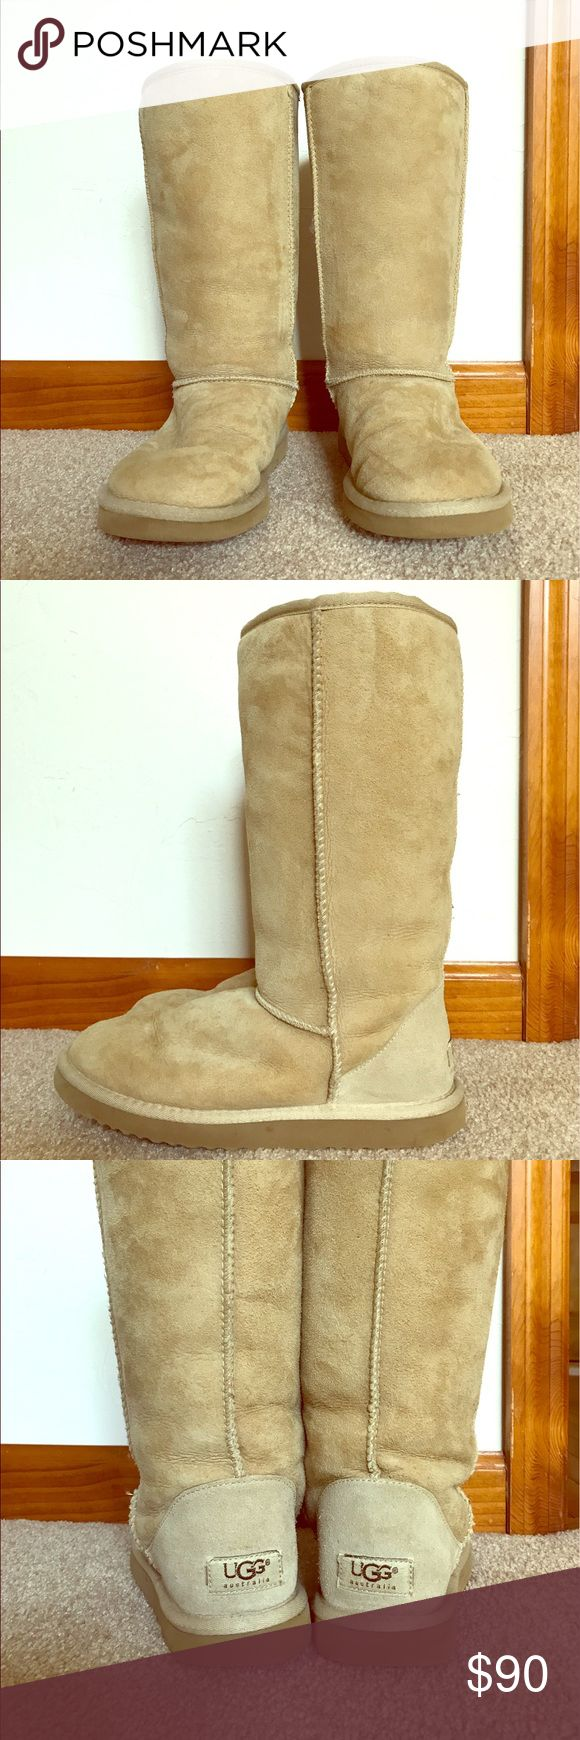 UGG Classic Tall Boots - Sand Tall sheep skin wool women's UGG boots. They have normal signs of wear. UGG Shoes Winter & Rain Boots